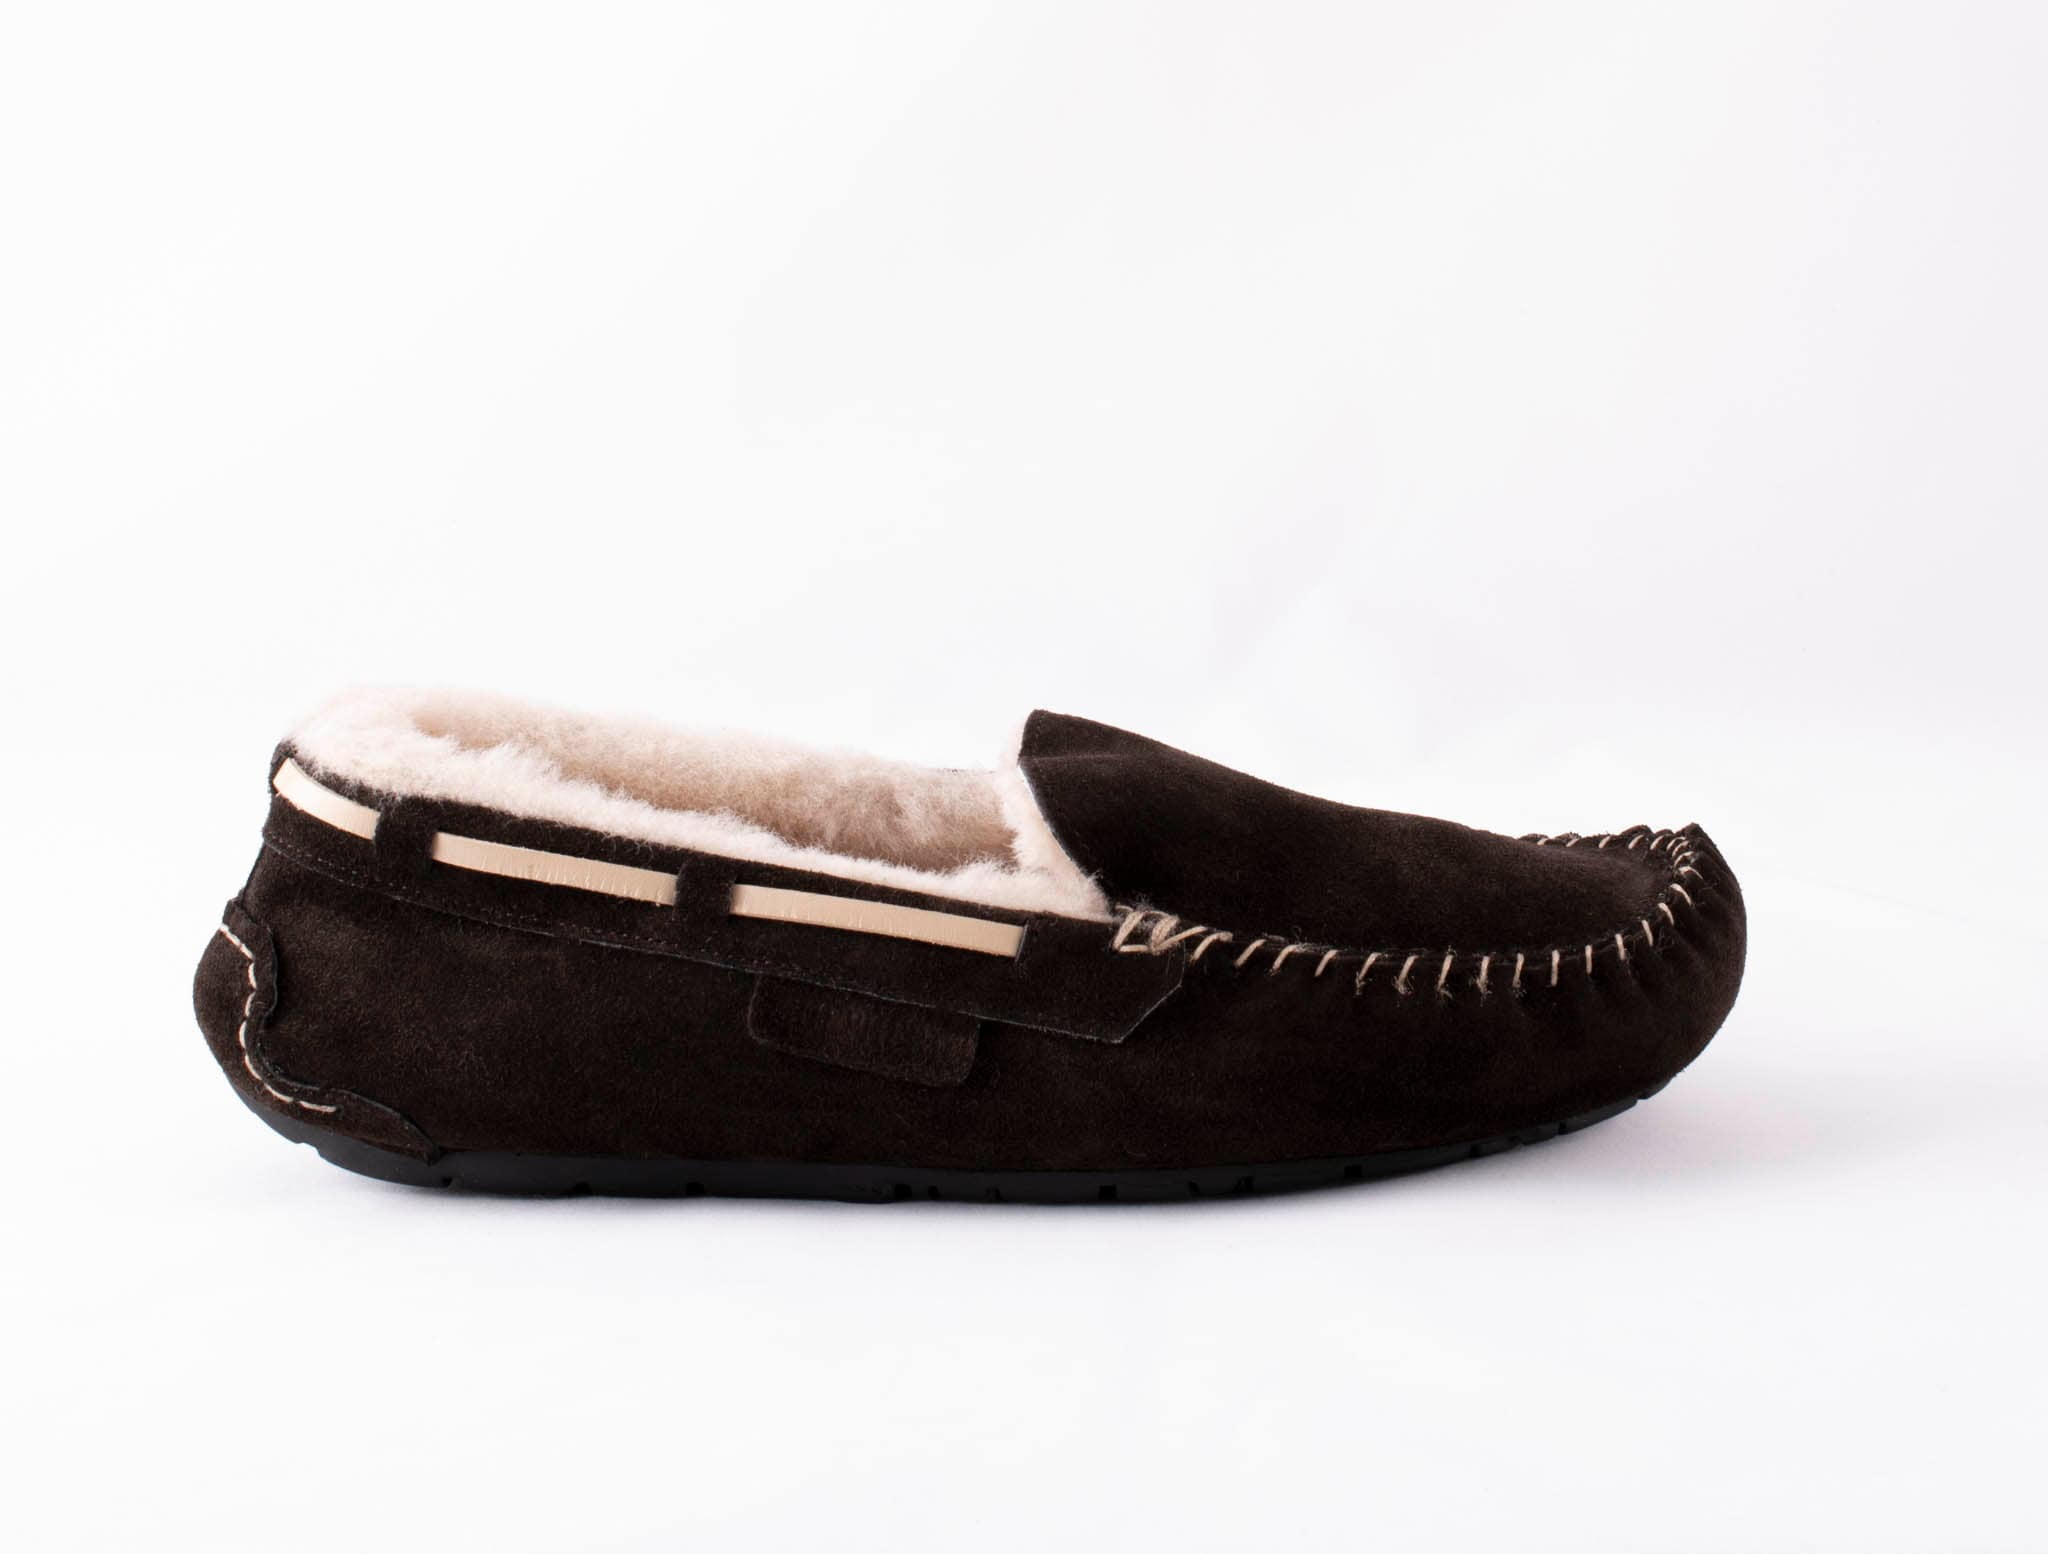 Shepherd Steffo slippers